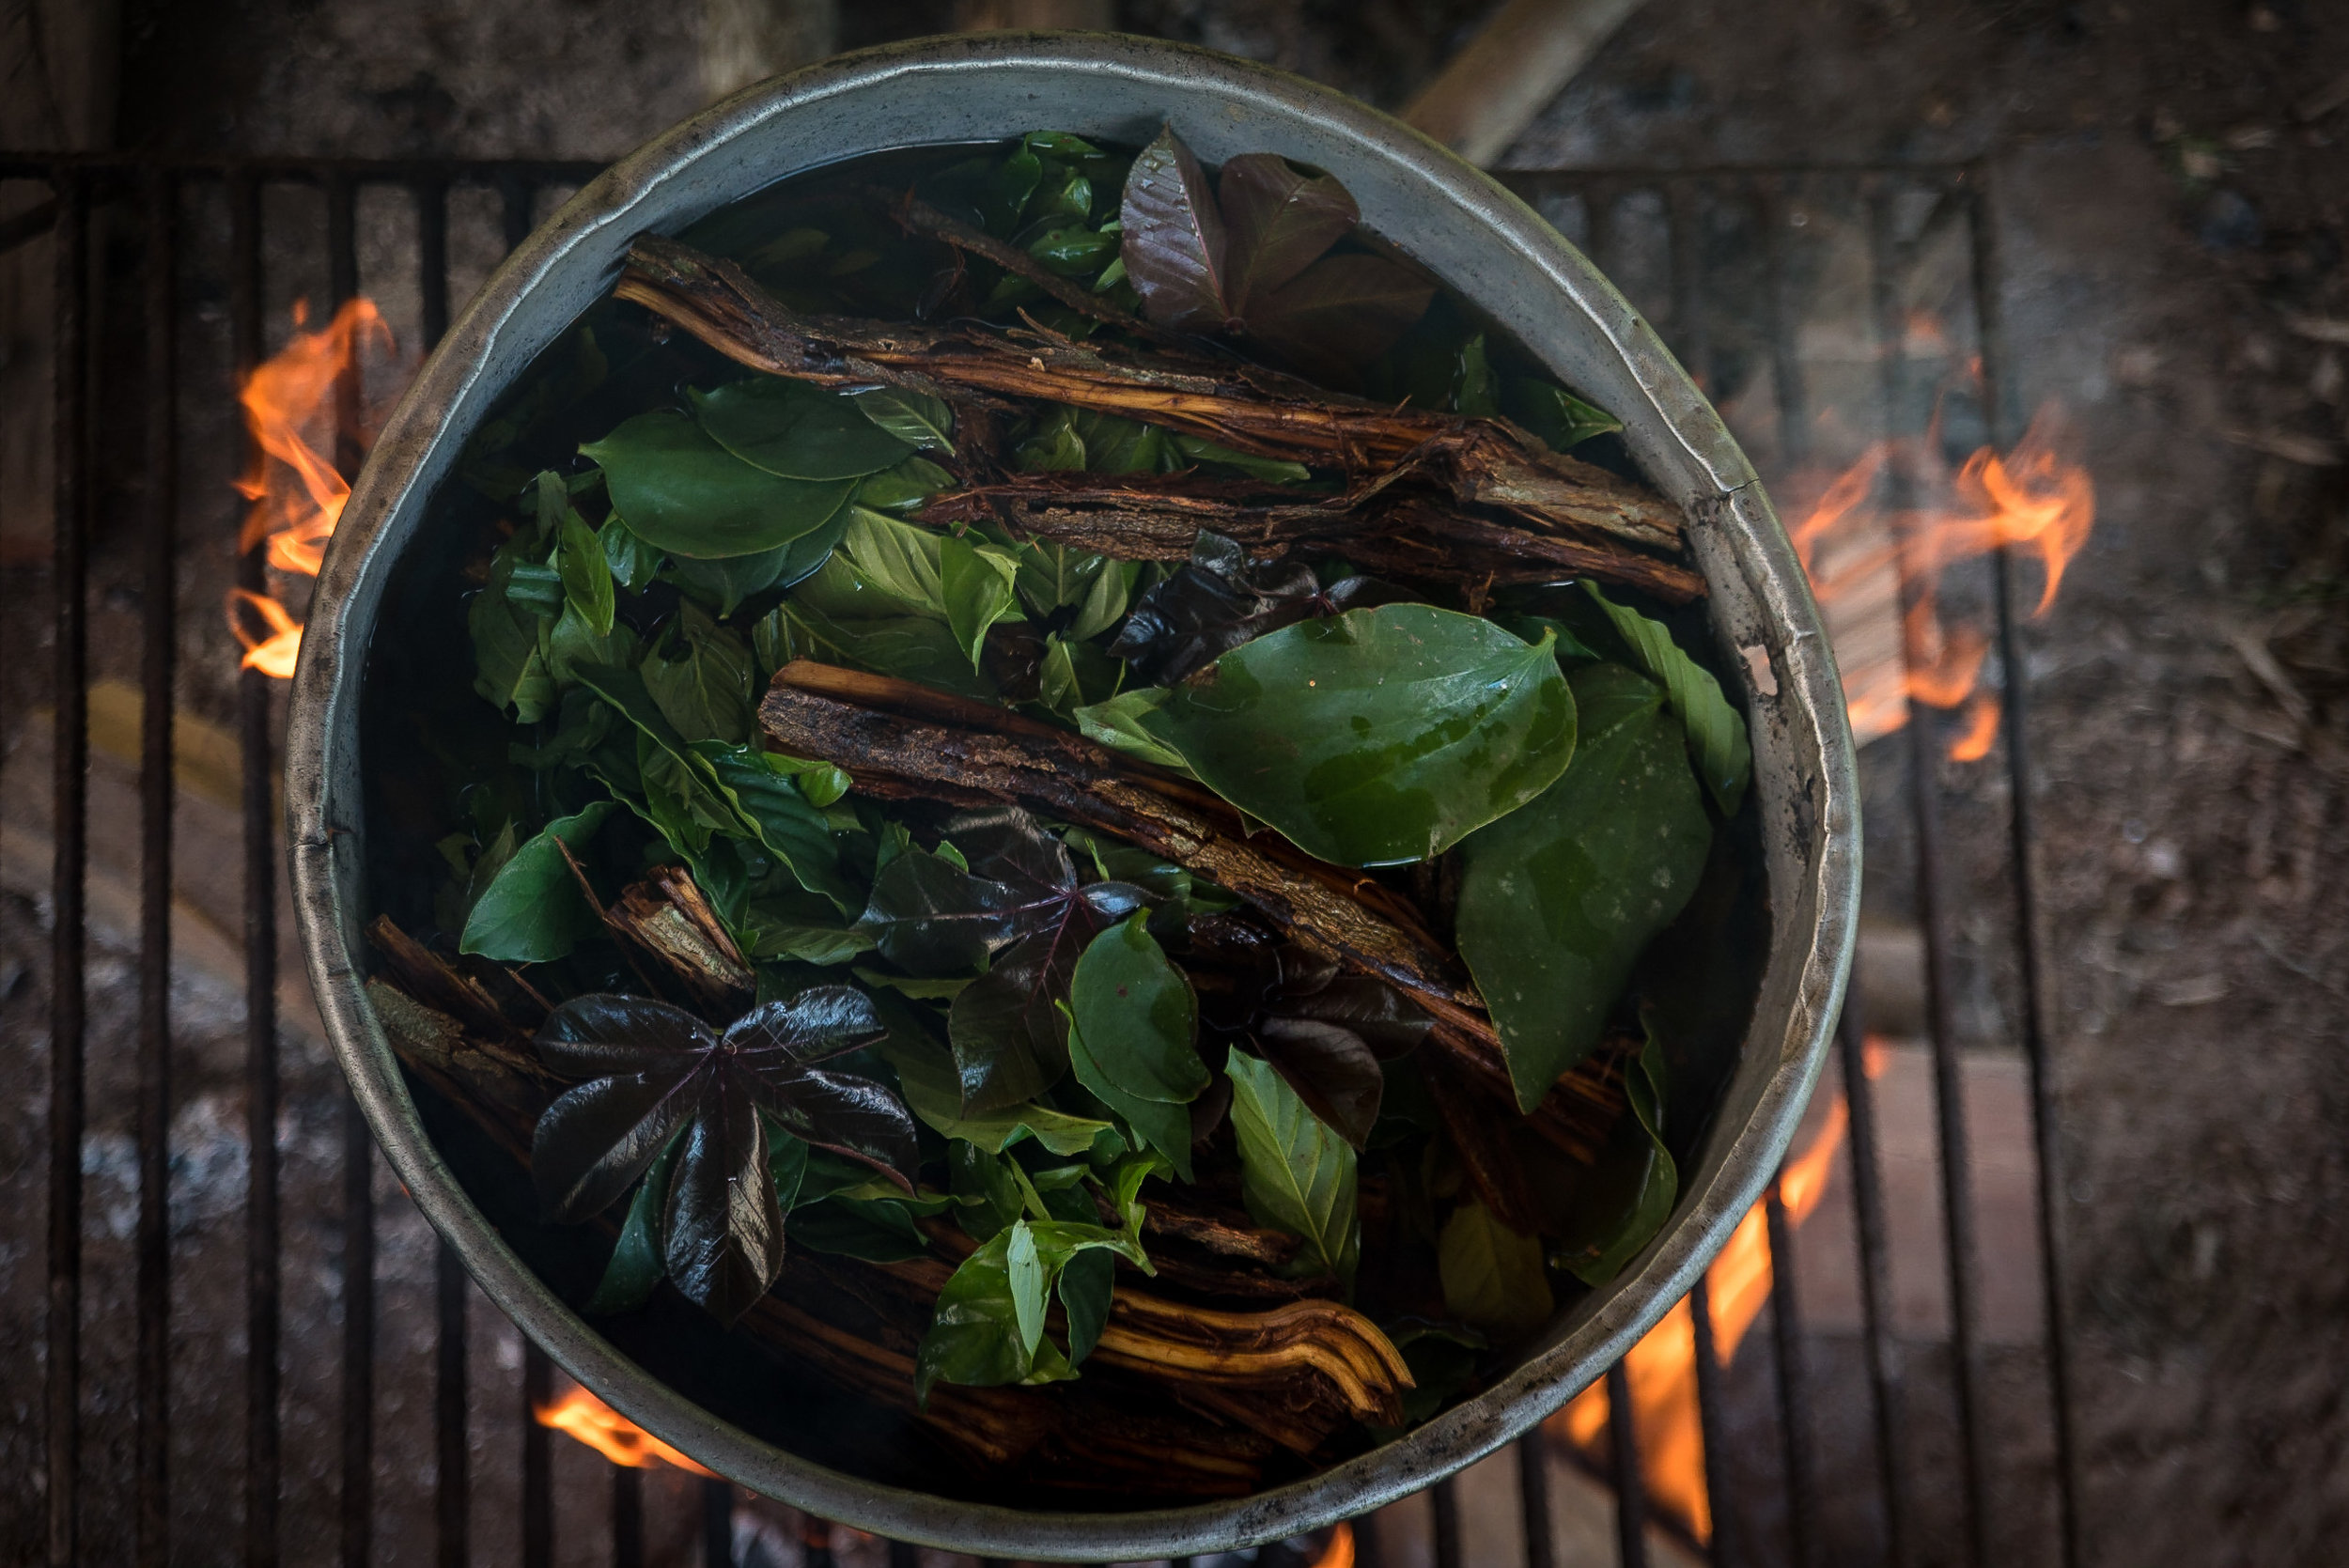 AN ANCIENT TRADITION - AYAHUASCA